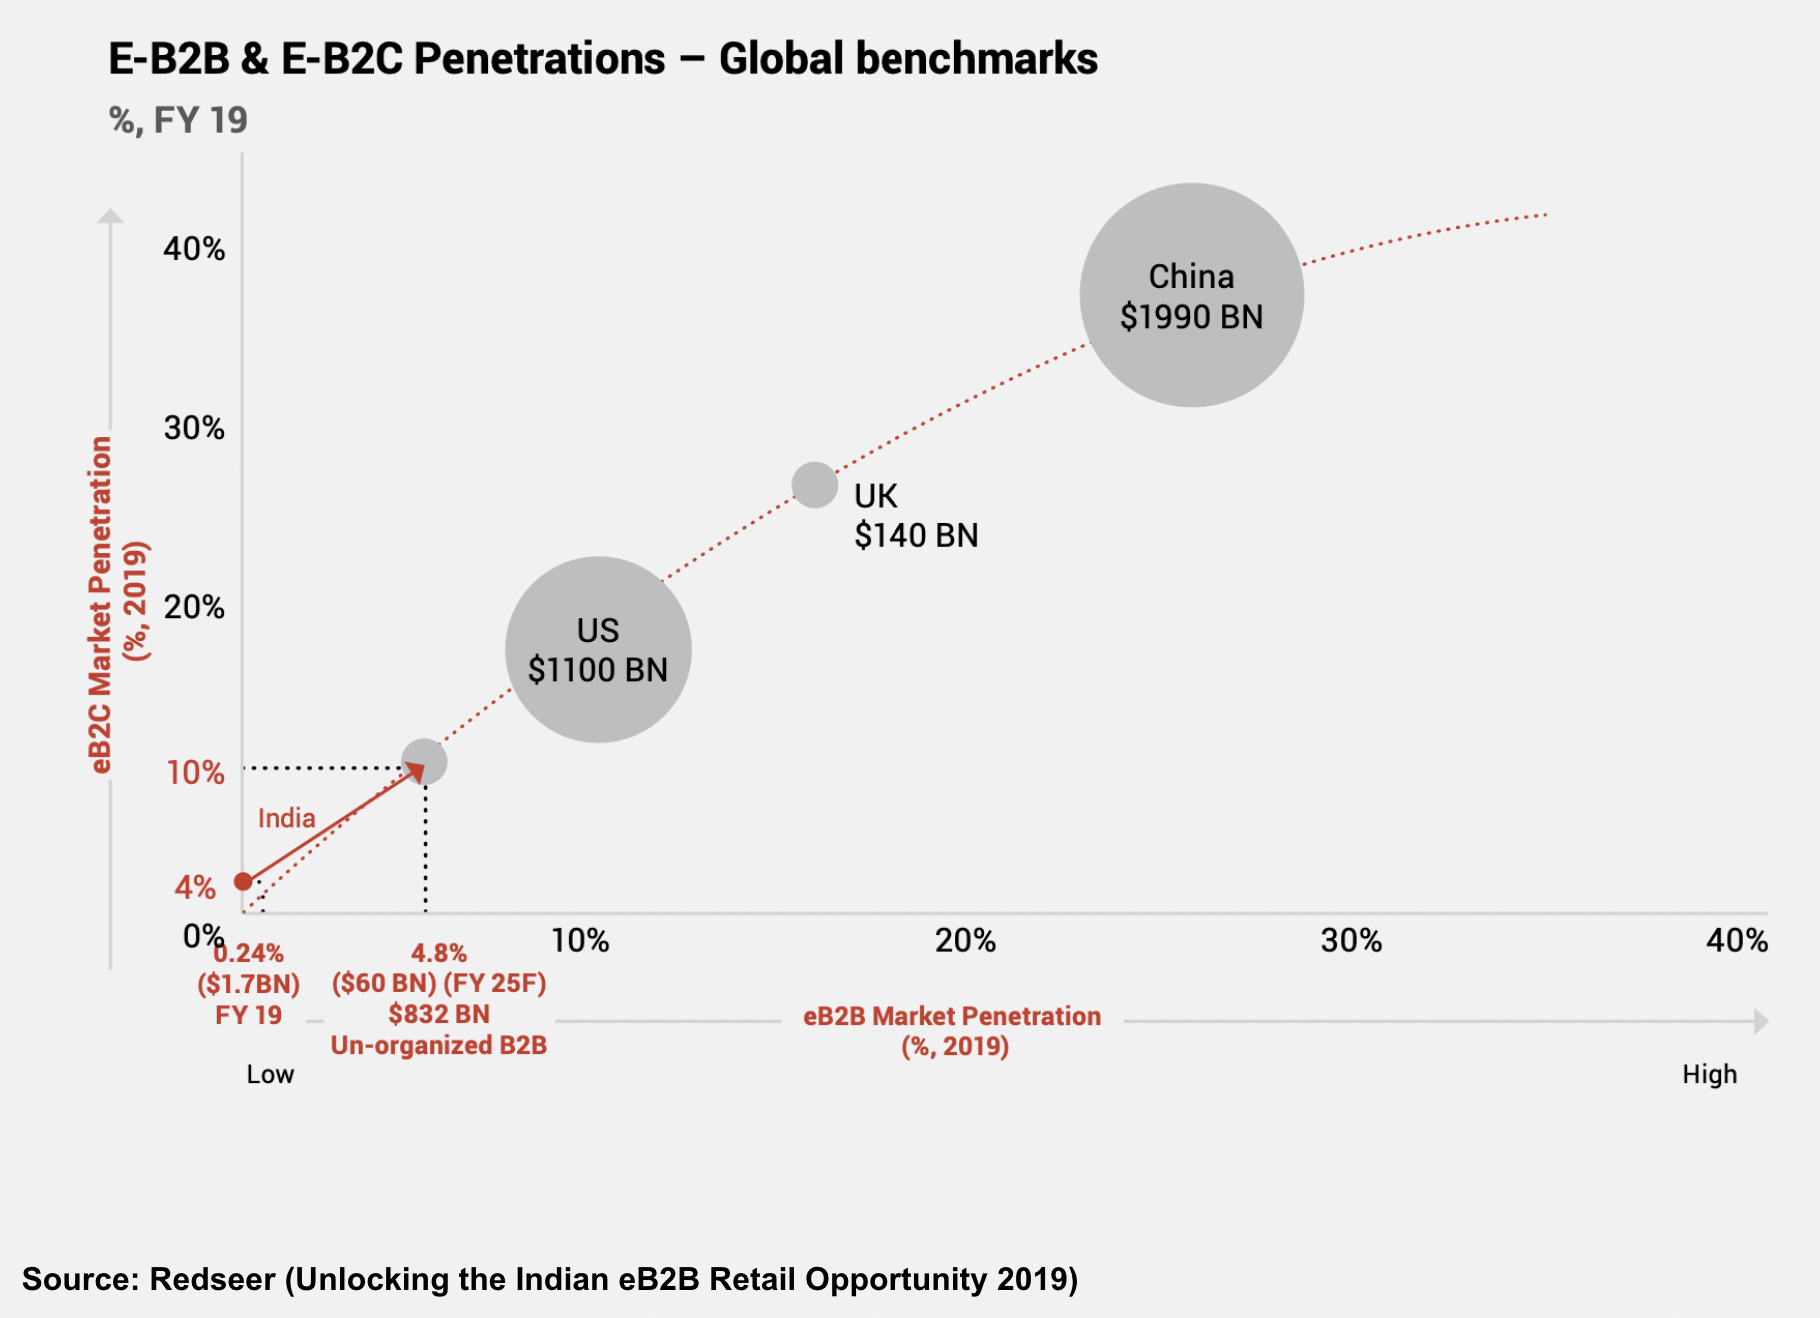 Online B2B and B2C penetration in India in 2019